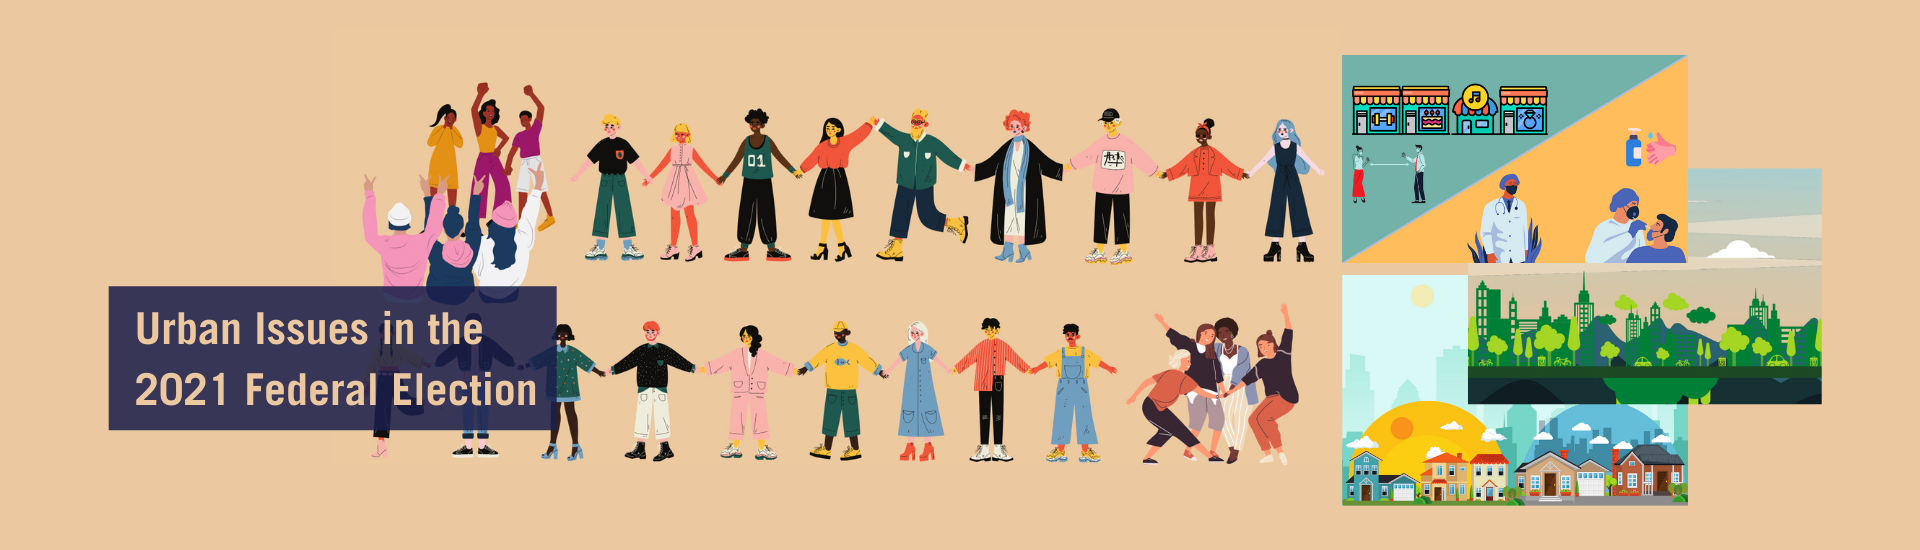 Illustration of people from diverse communities and issues of affordable housing, climate resilience and public health that impact them